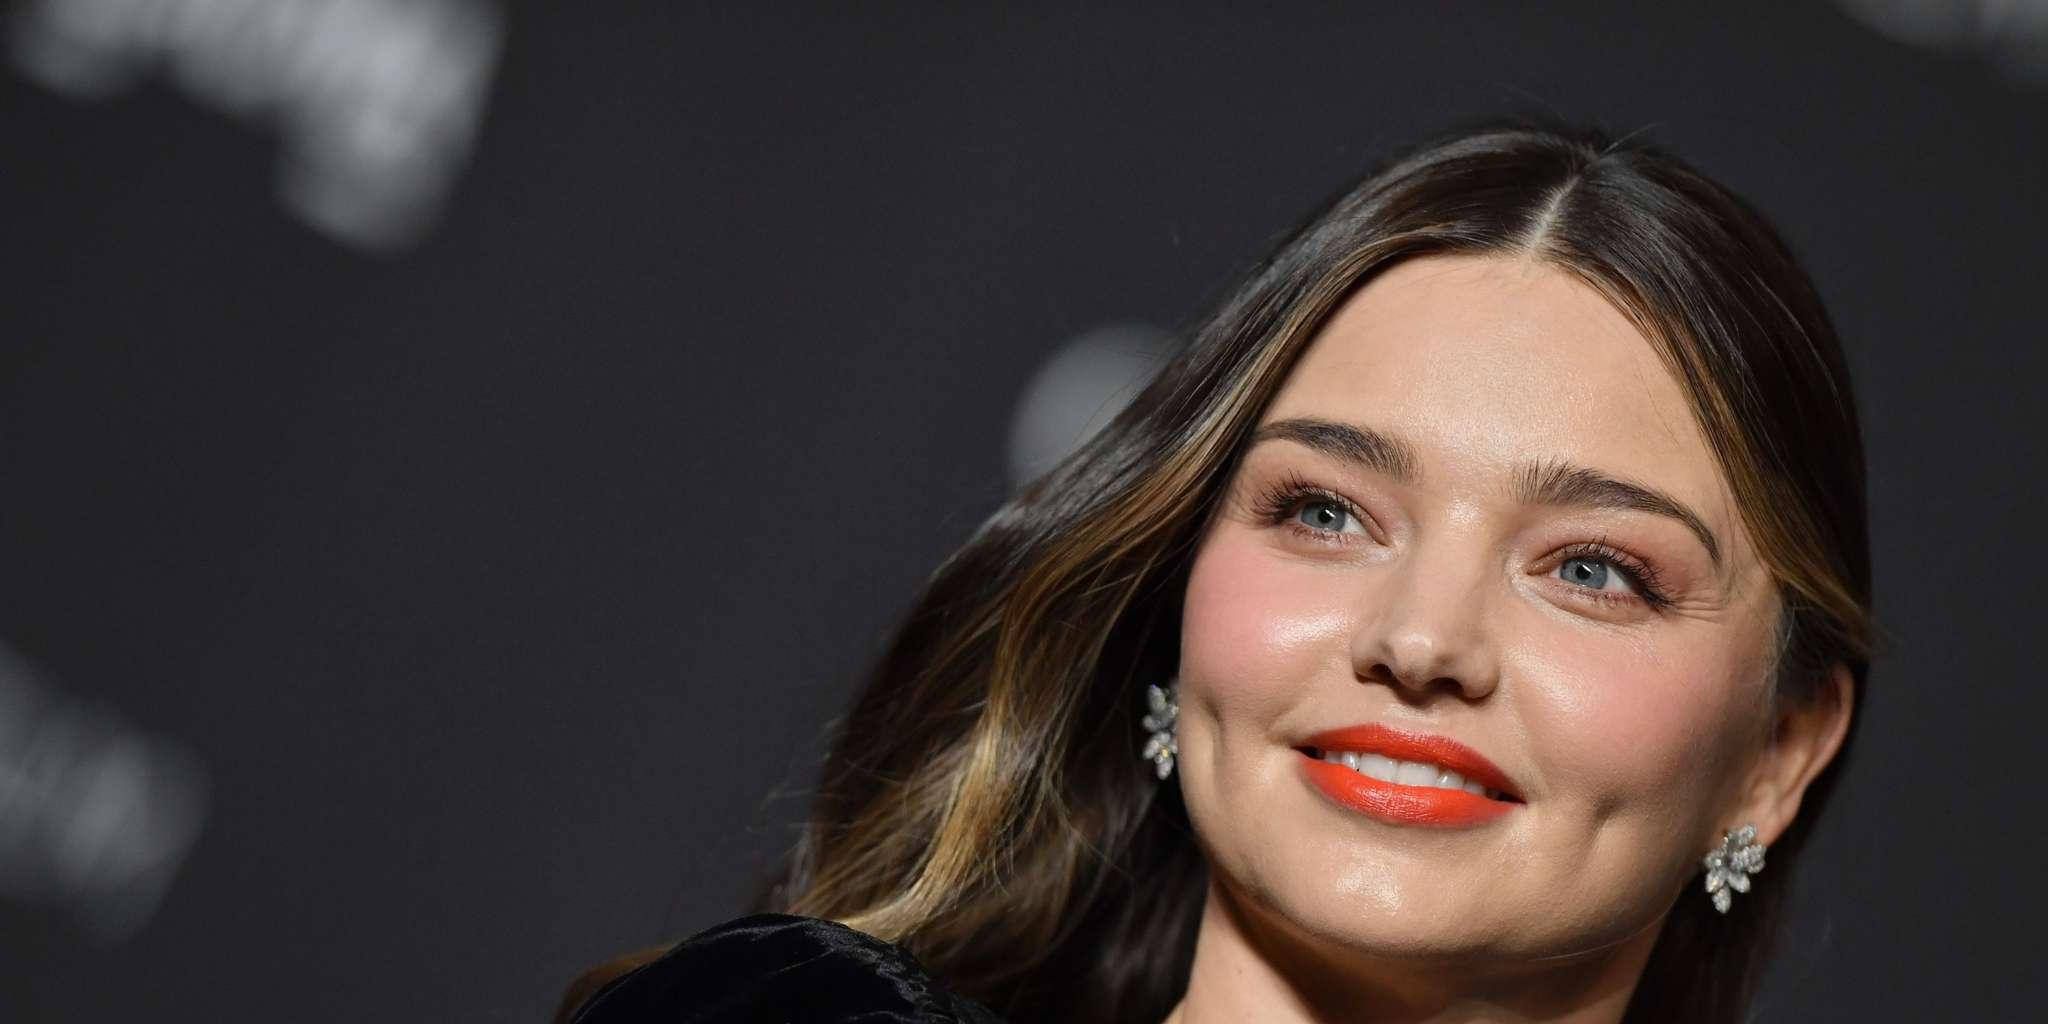 Orlando Bloom's Former Wife, Model Miranda Kerr Gushes Over His New Baby With Katy Perry - 'Can't Wait To Meet Her!'